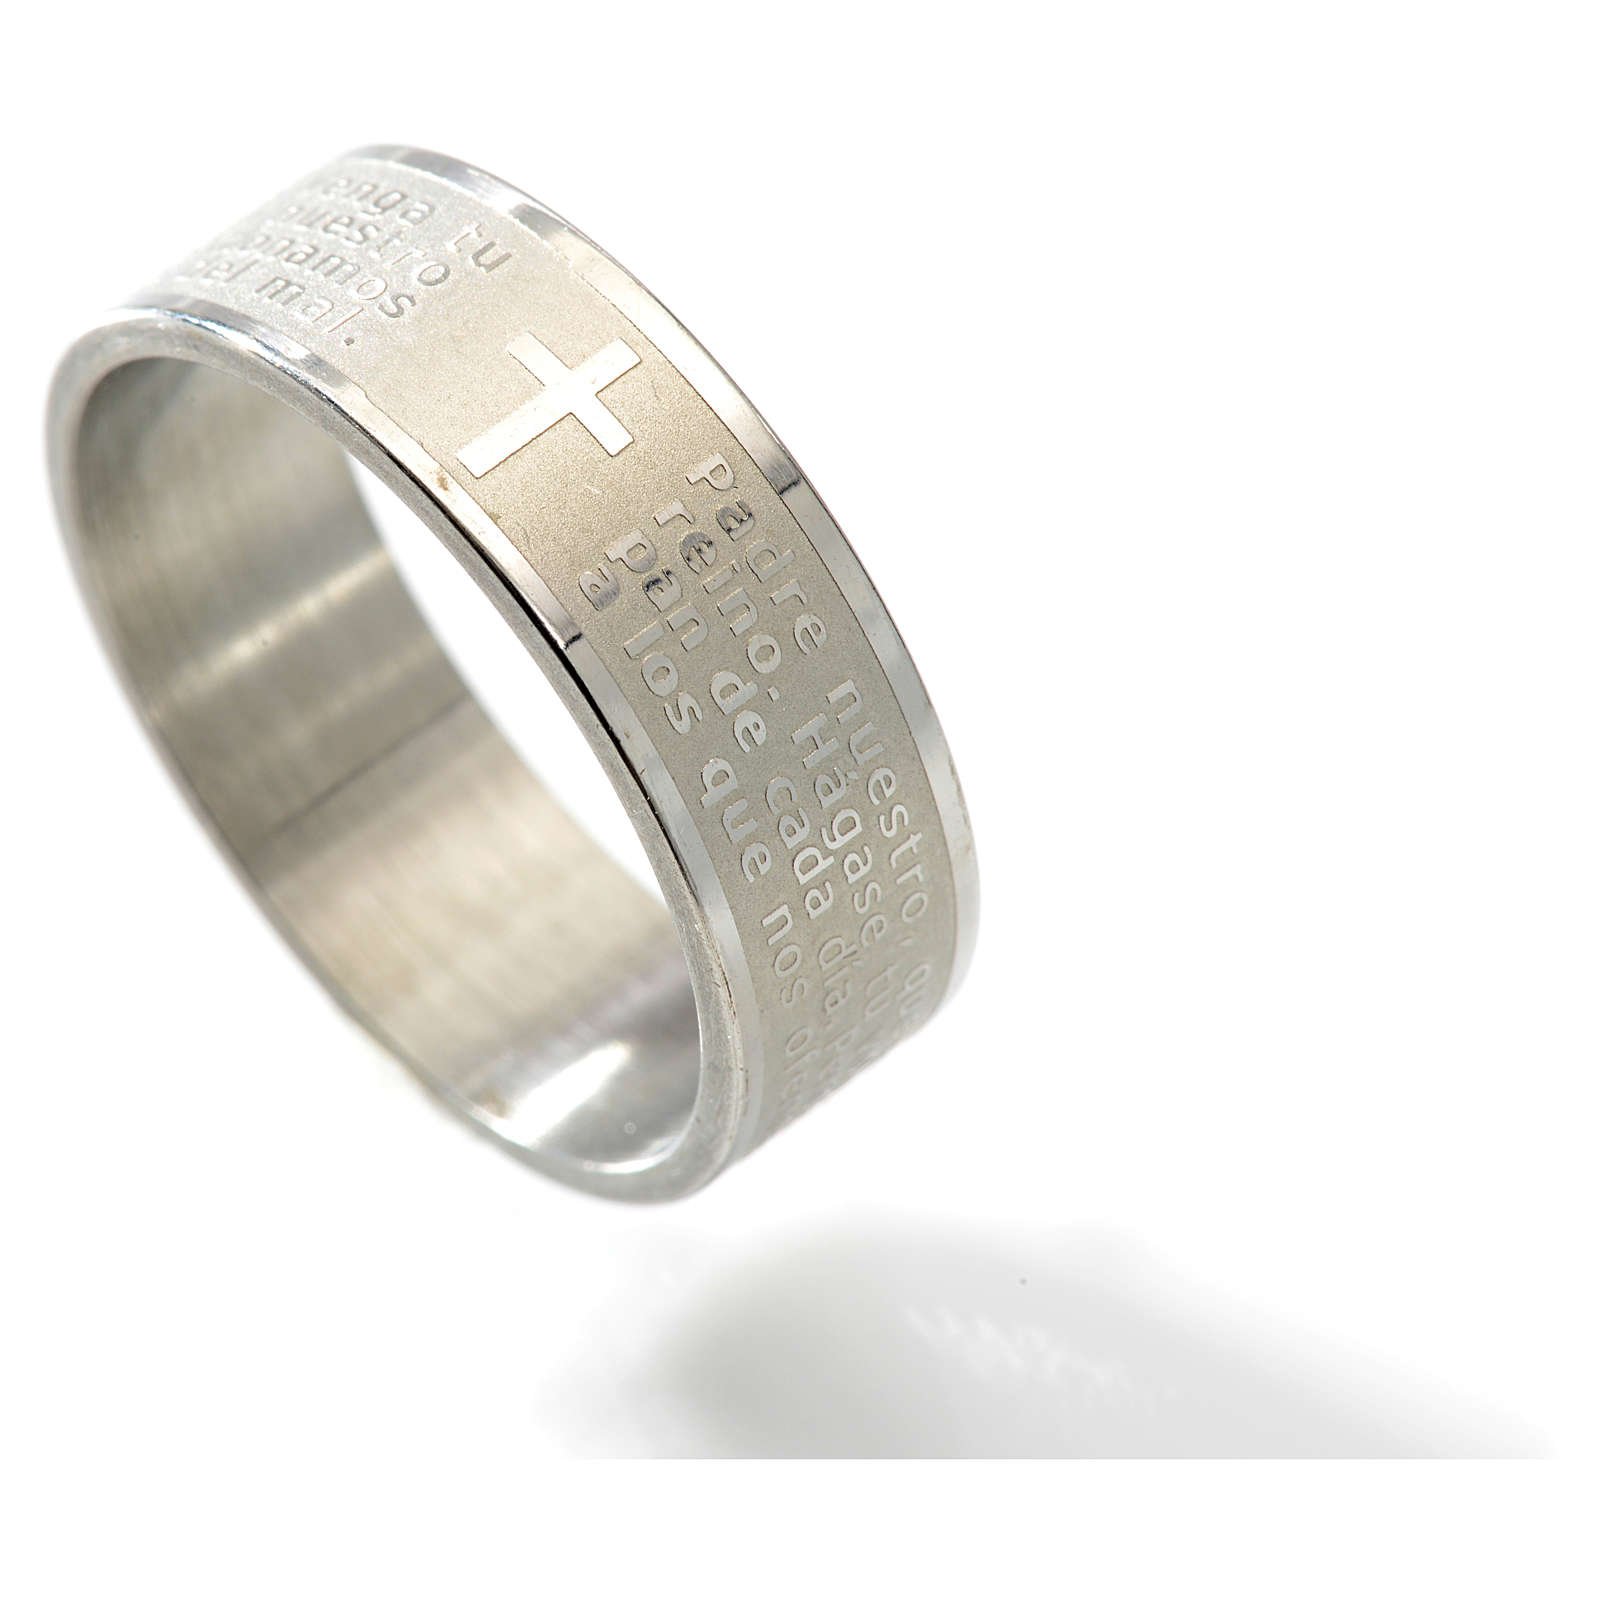 Our Father prayer ring in Spanish 3